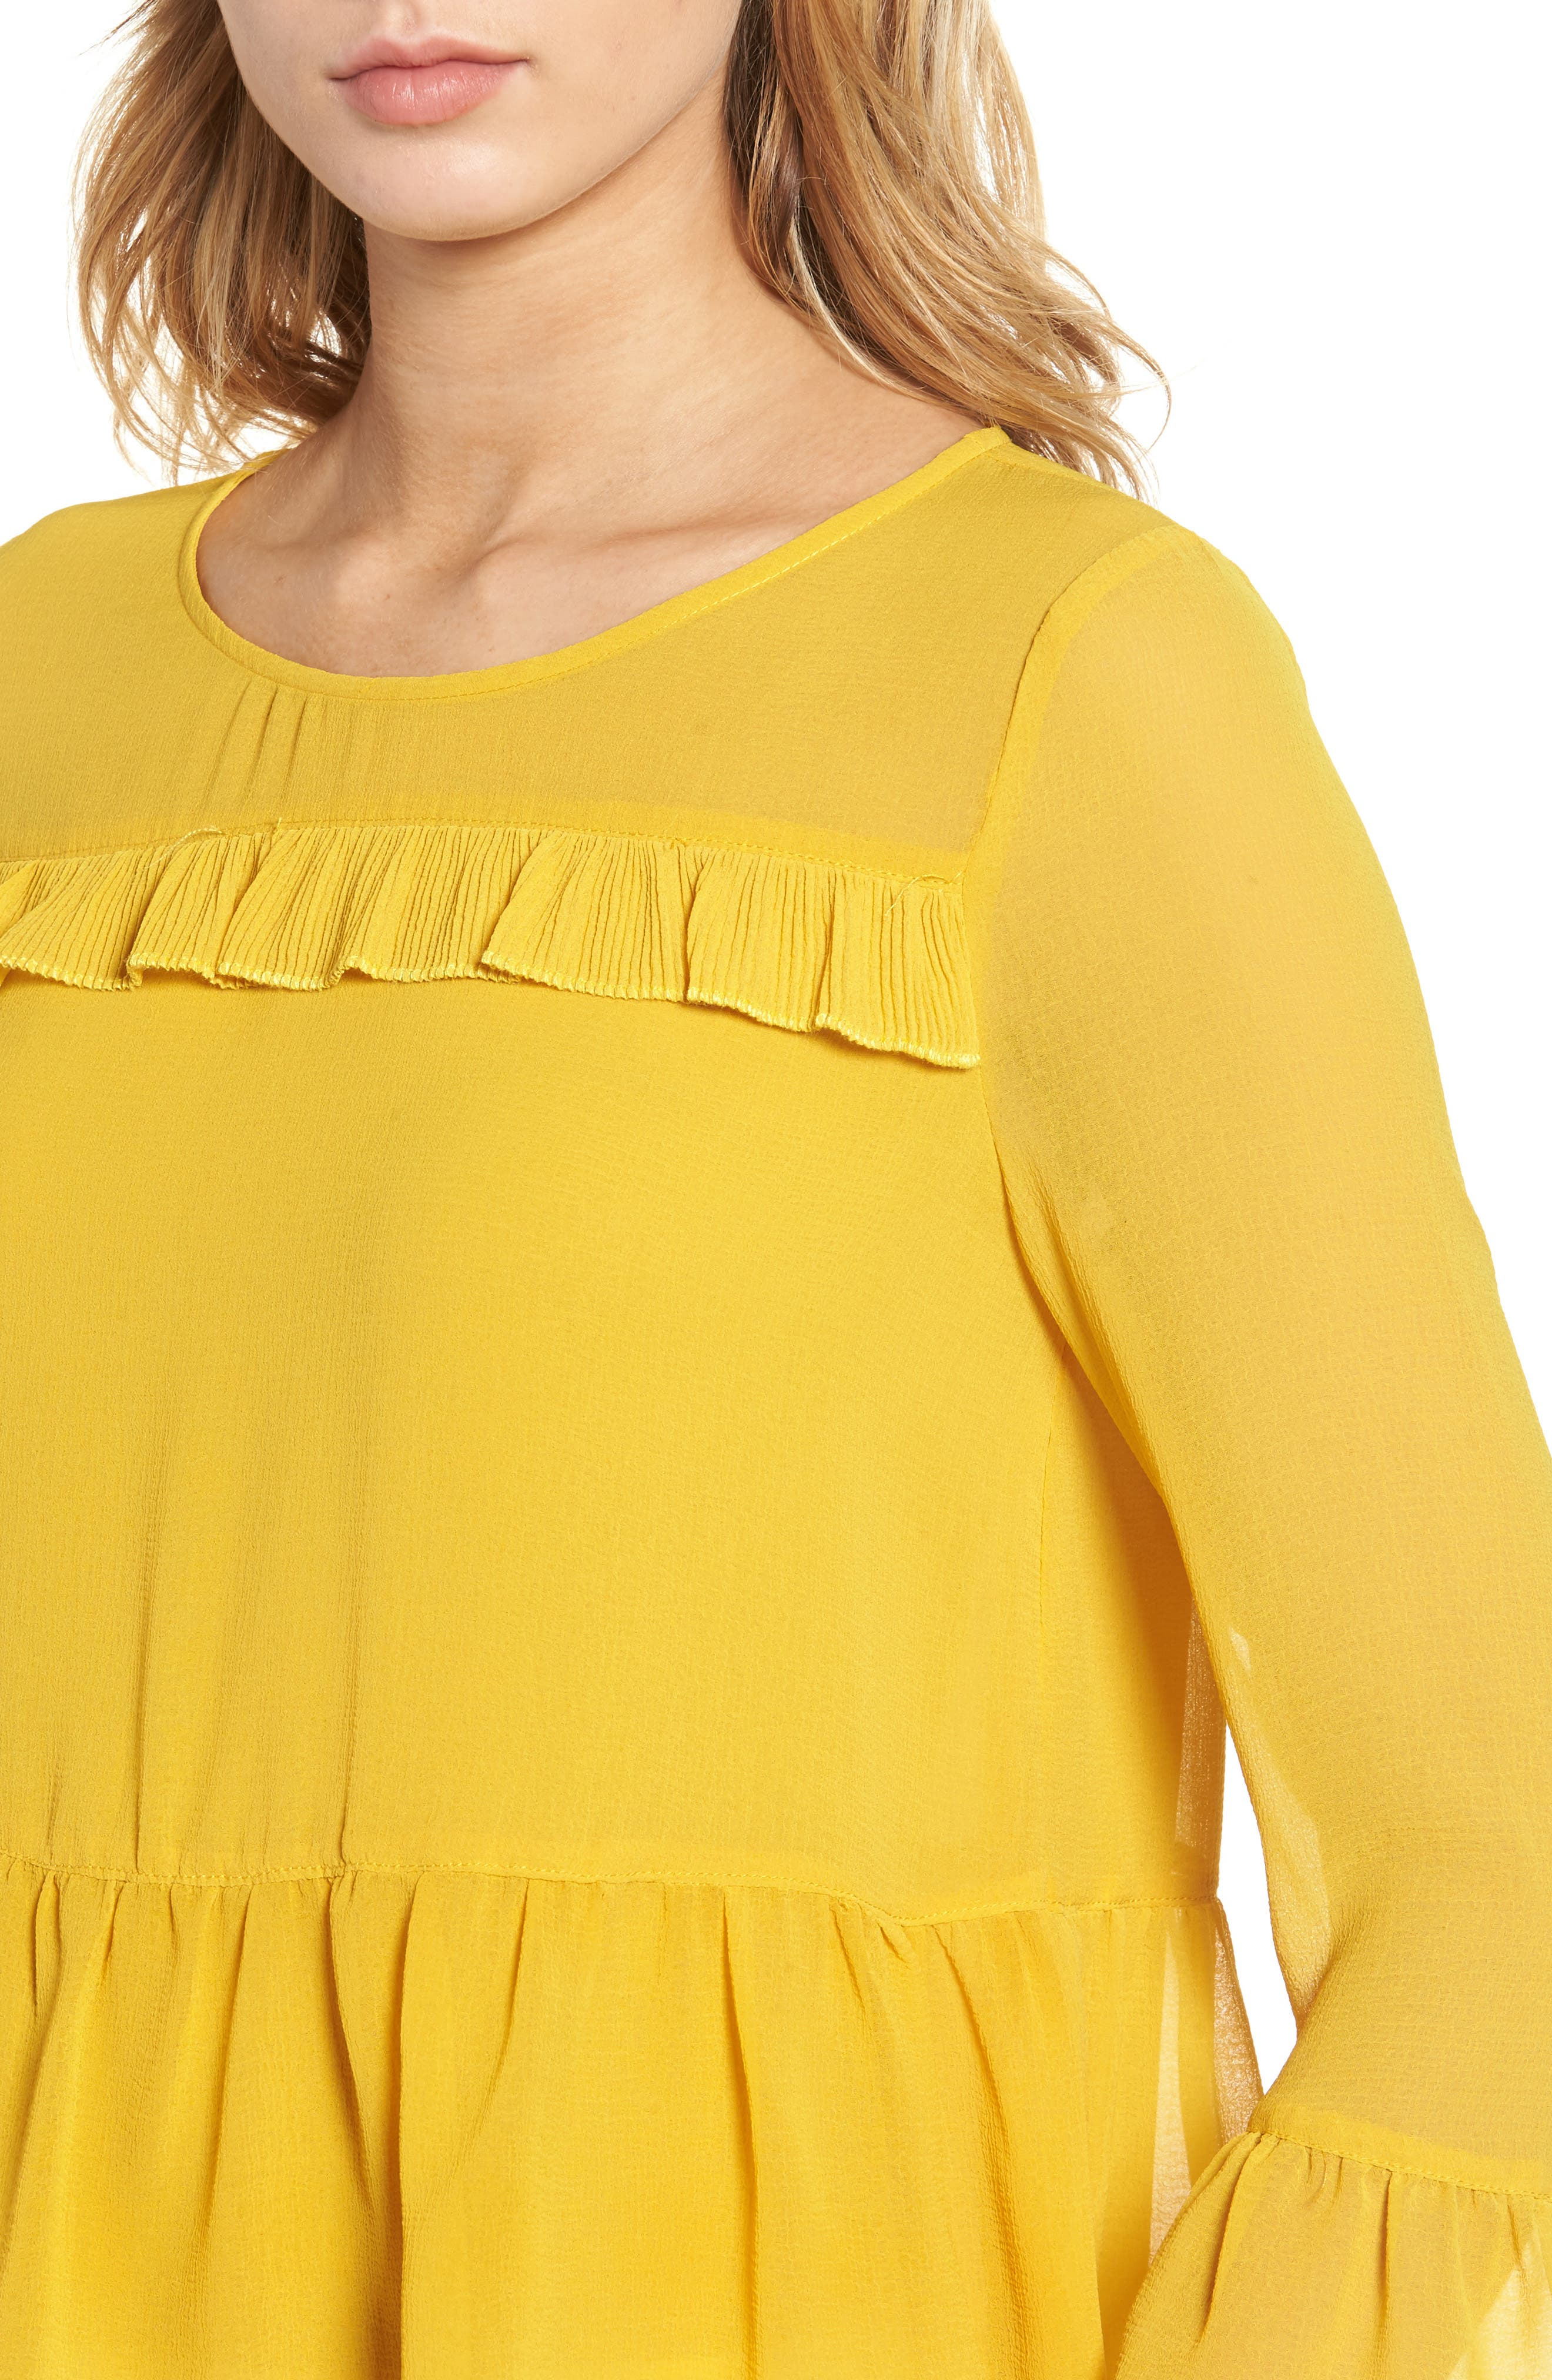 CUPCAKES AND CASHMERE, Katlyn Peplum Top, Alternate thumbnail 4, color, 700